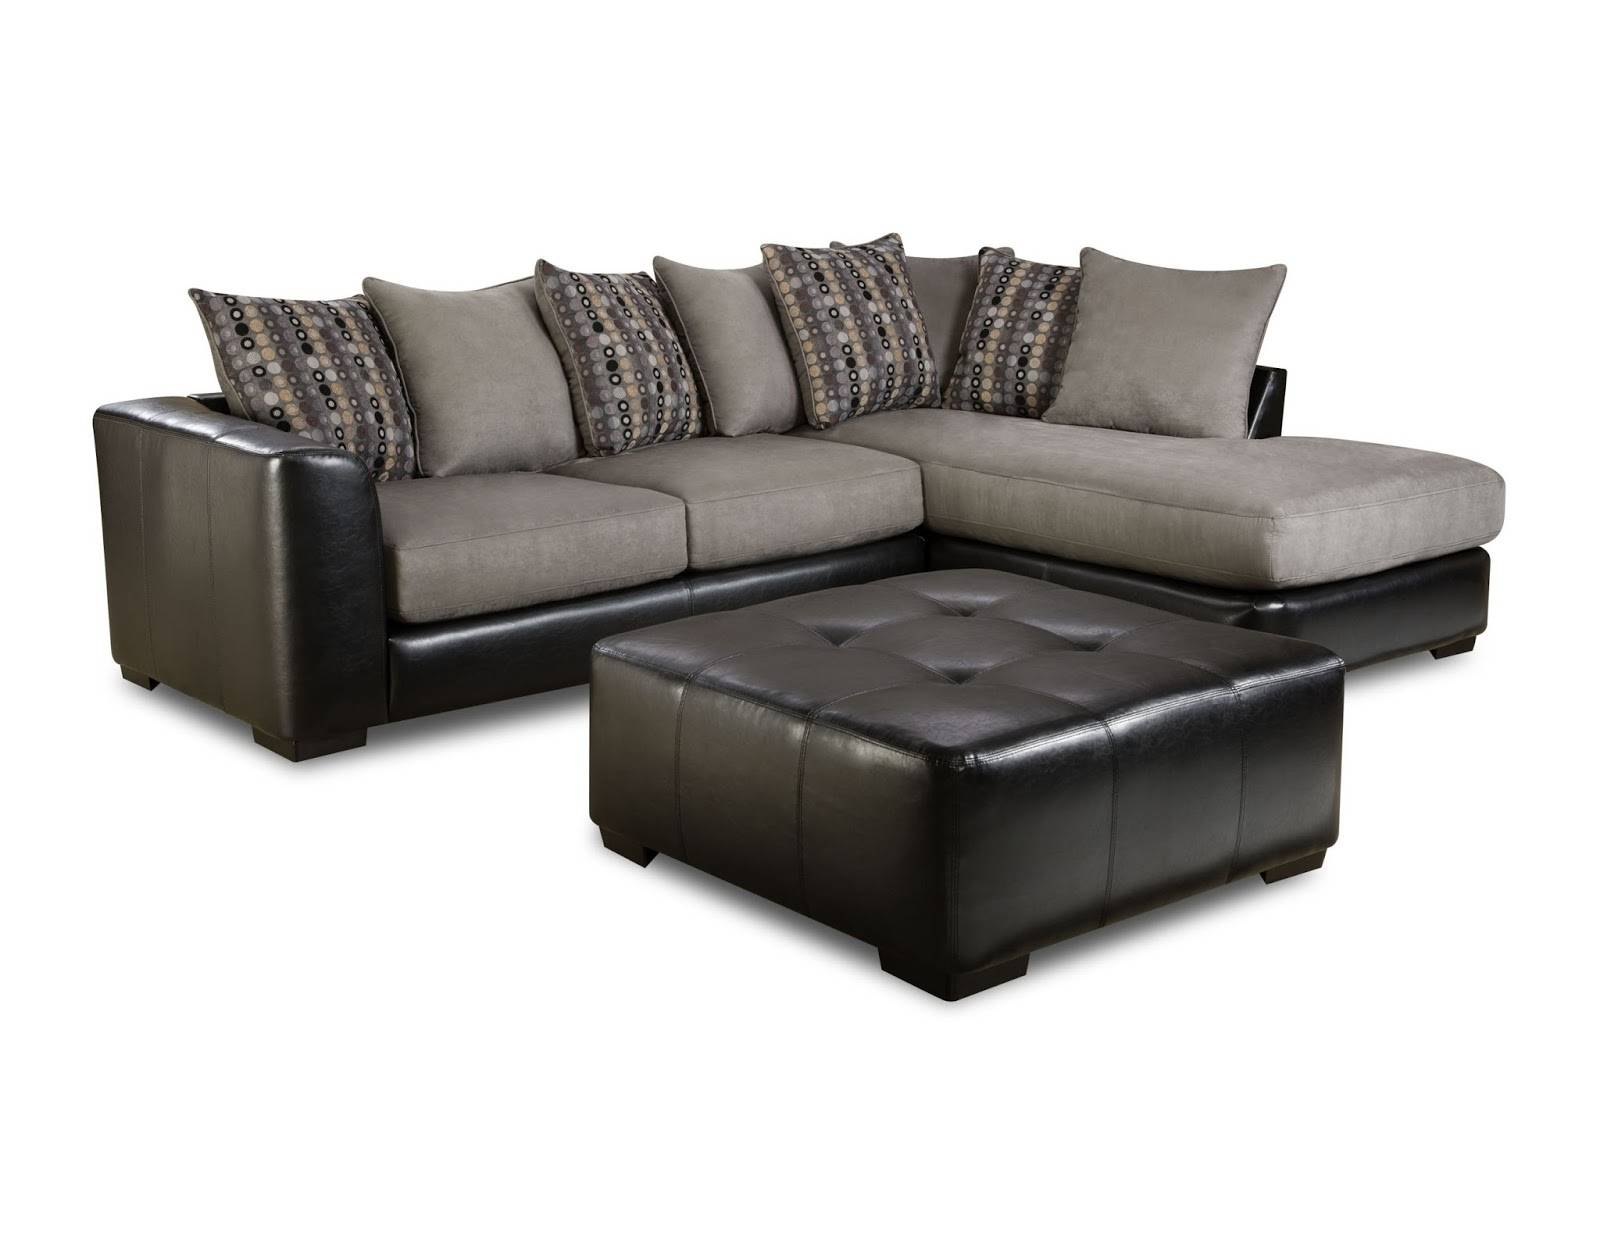 Albany Industries Sectional Sofa | Interior Design Pertaining To Albany Industries Sectional Sofa (View 12 of 30)